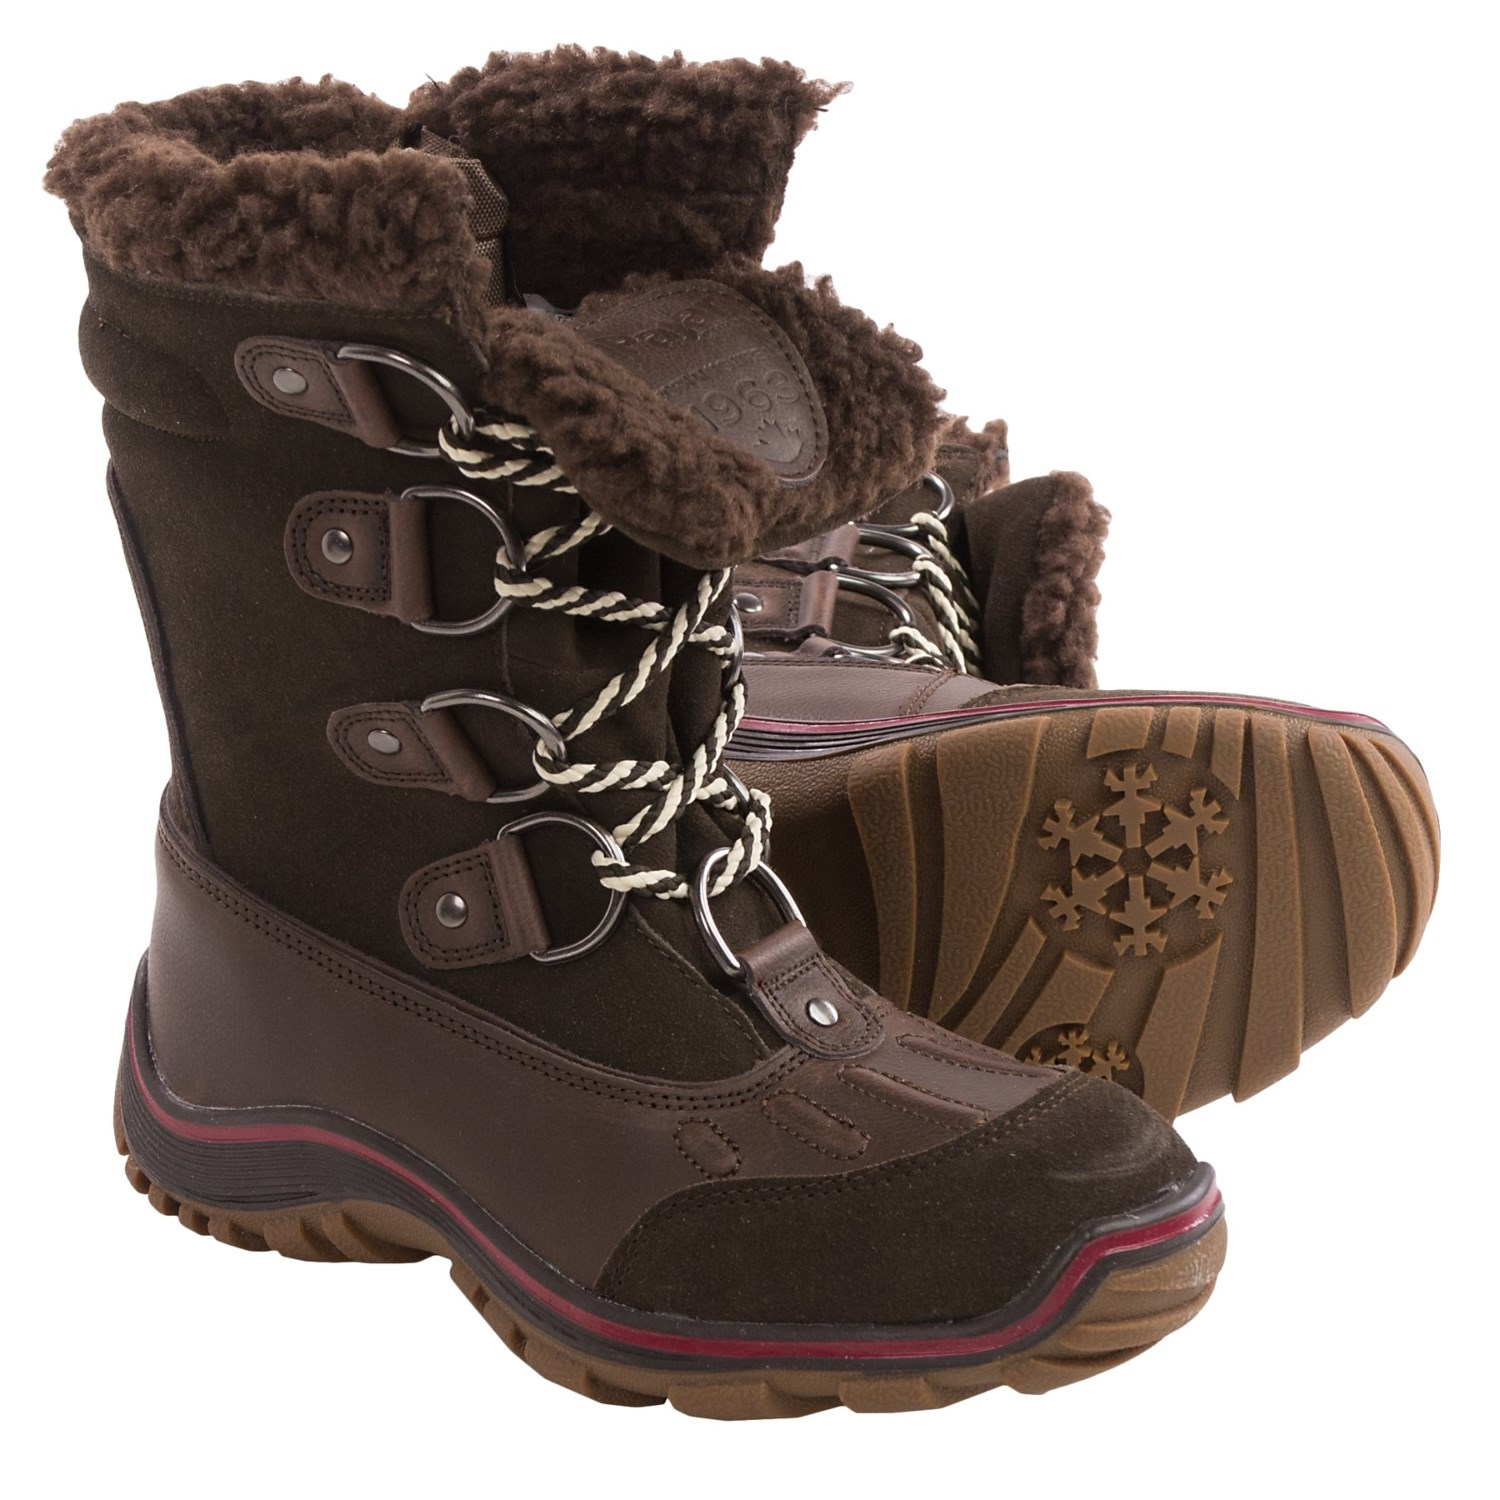 Pajar alina snow boots waterproof for women in coffee